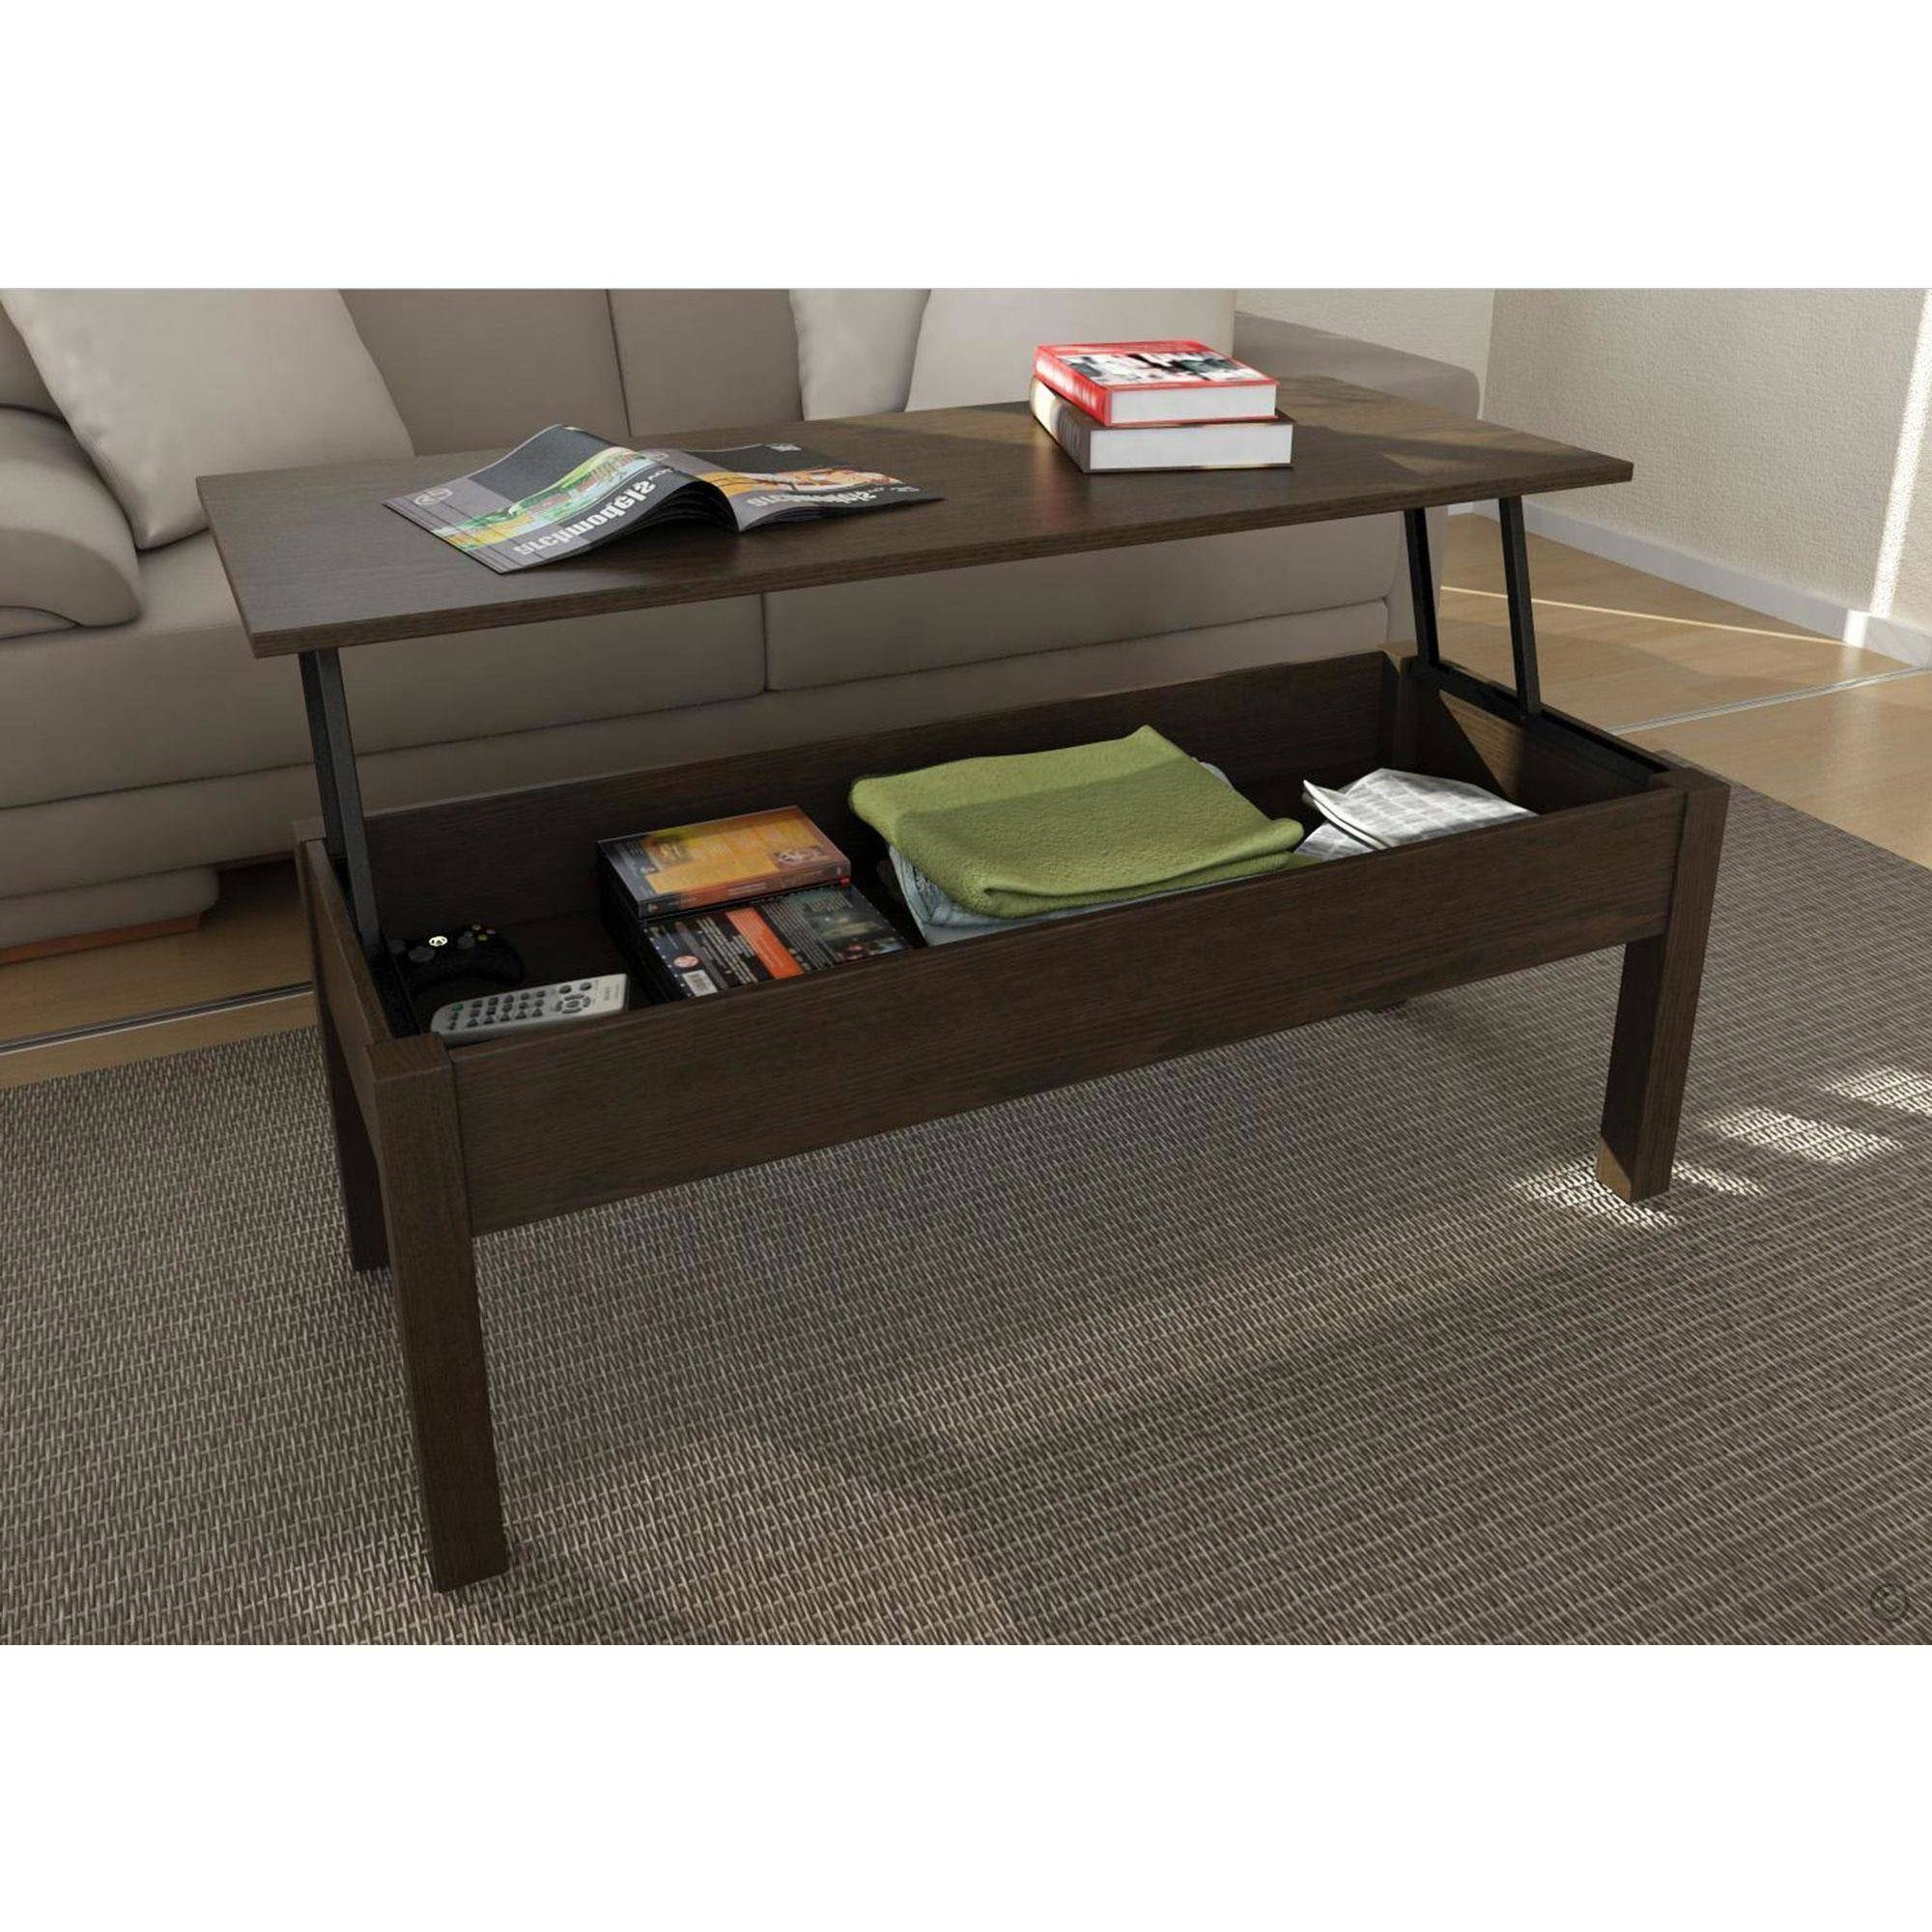 Mainstays Lift-Top Coffee Table, Multiple Colors - Walmart for Raisable Coffee Tables (Image 26 of 30)